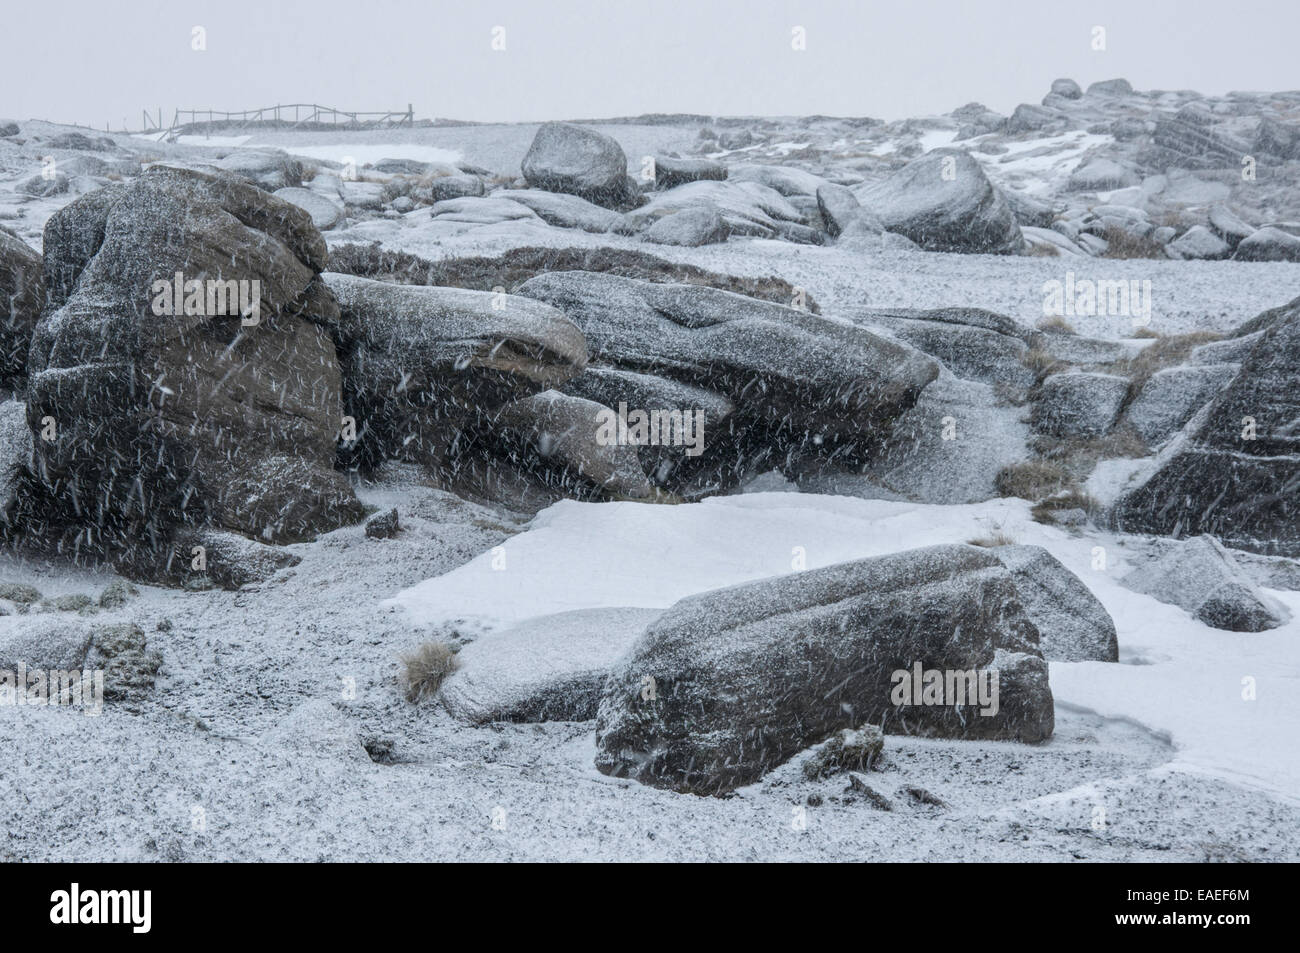 Bleak, snowy conditions on Kinder Scout showing unpredictable weather on these high moorland hills. - Stock Image